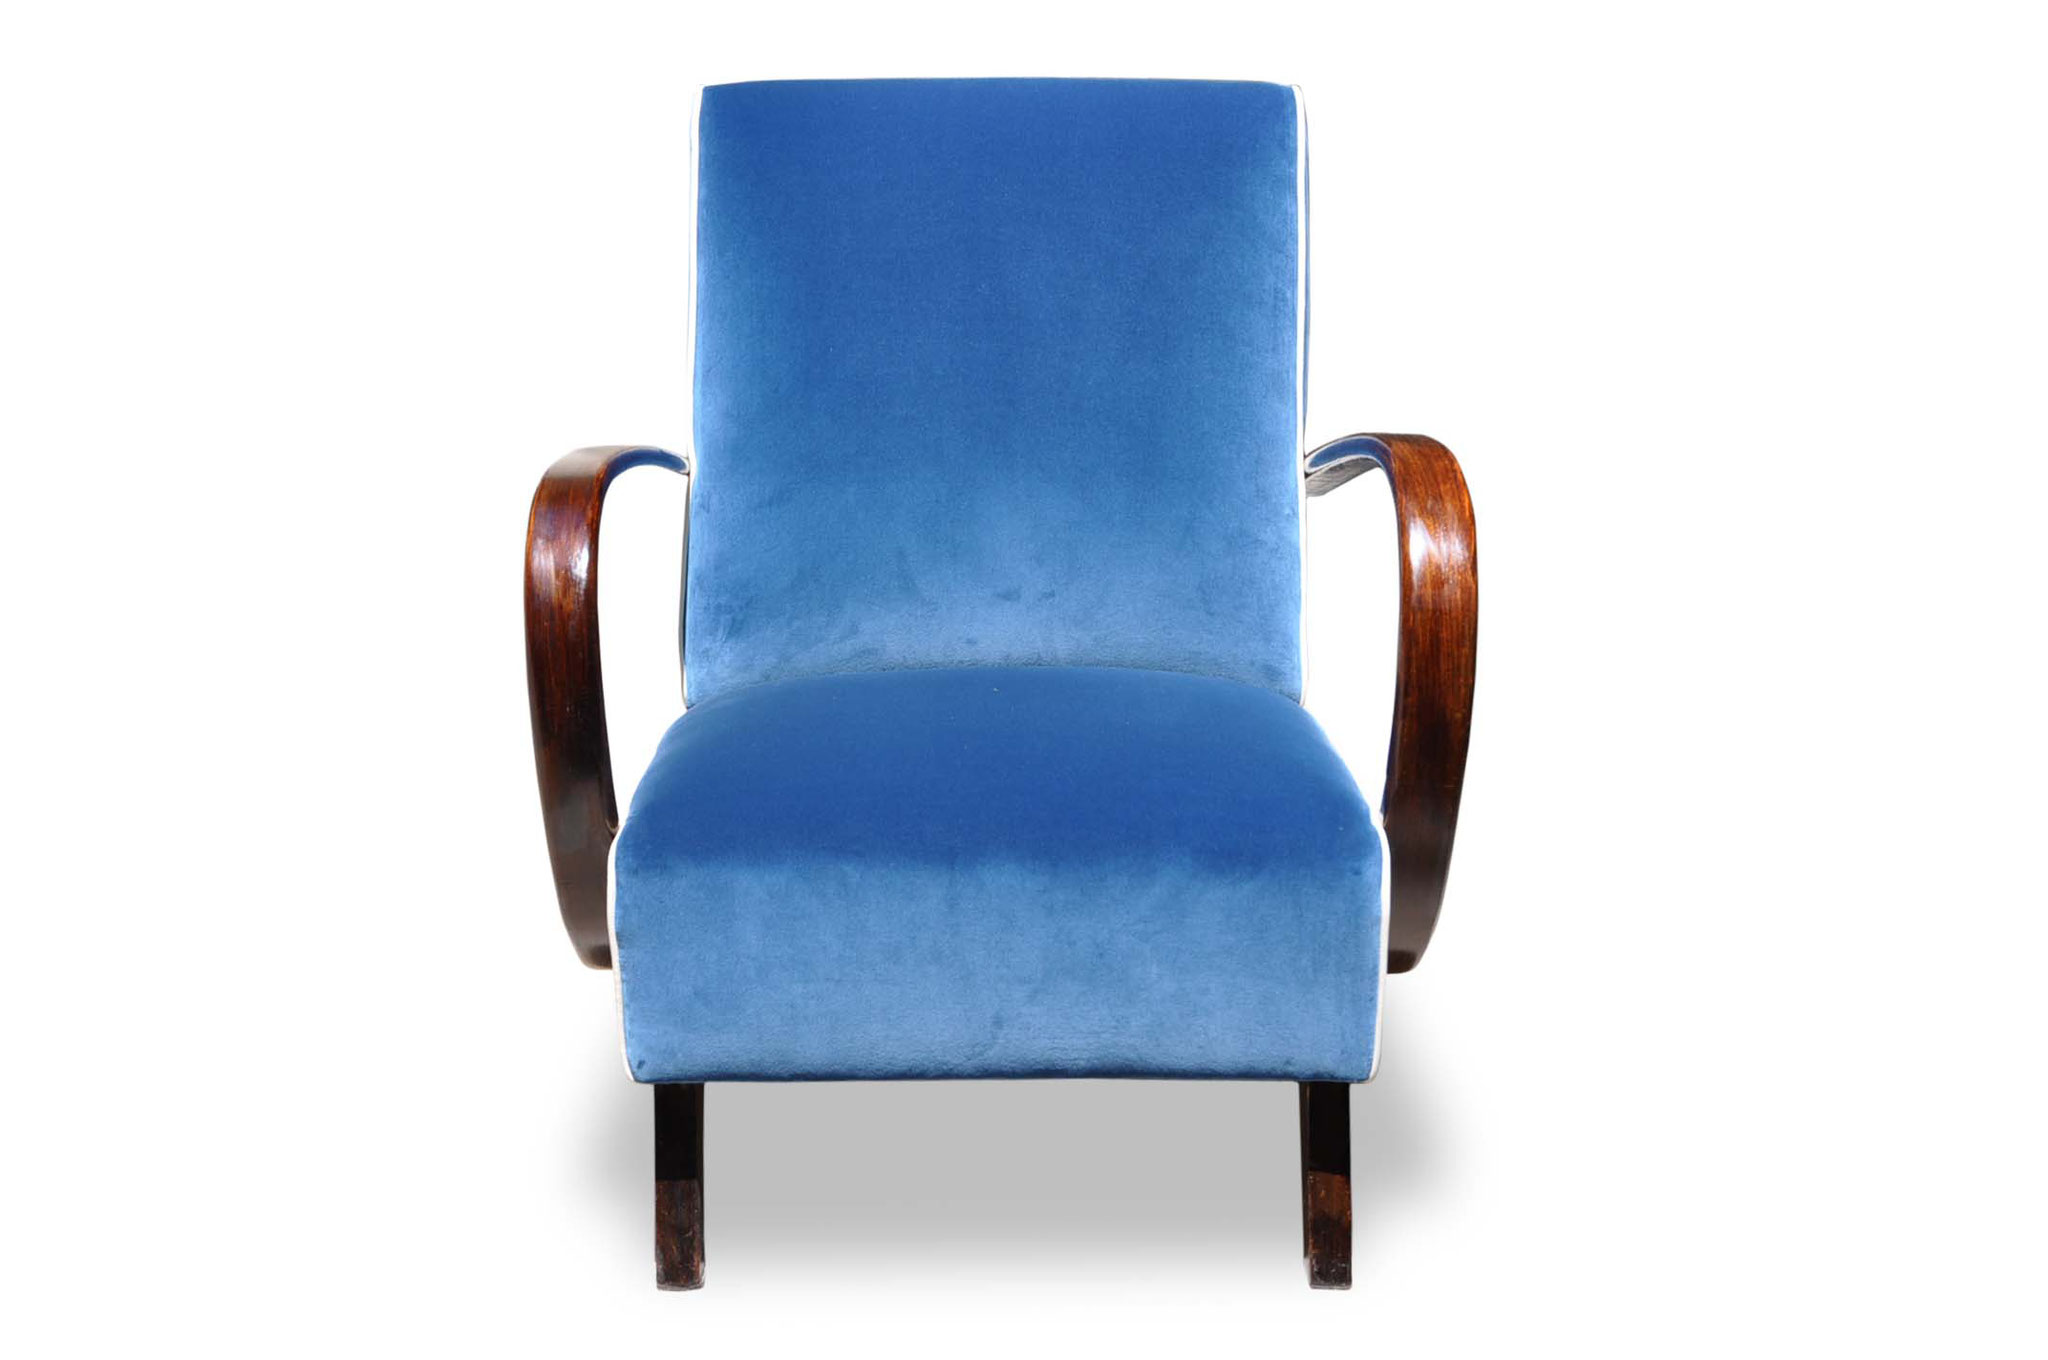 art deco chair in prussian blue velvet